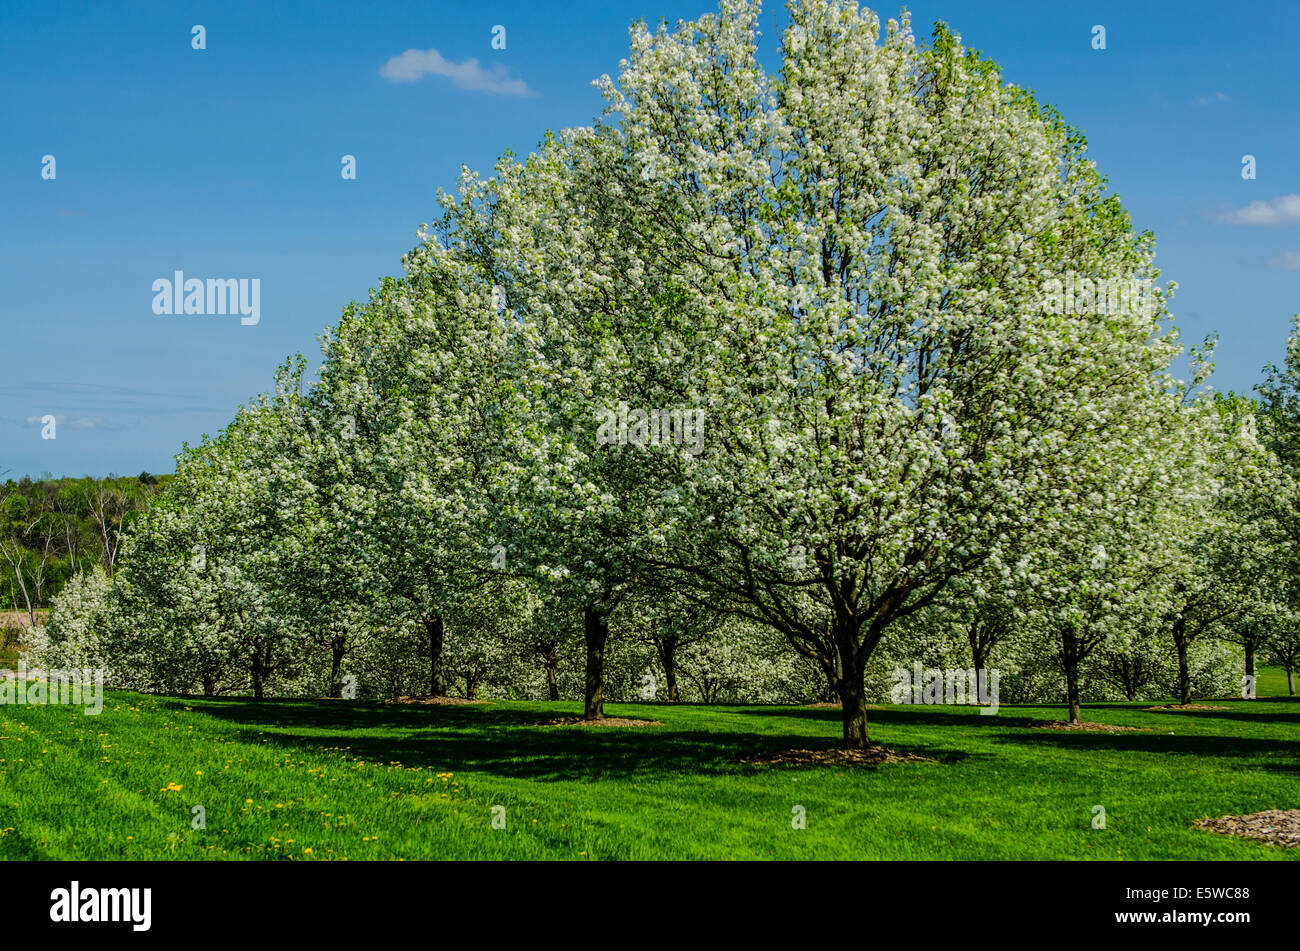 Beech nut trees in a row and columns. - Stock Image